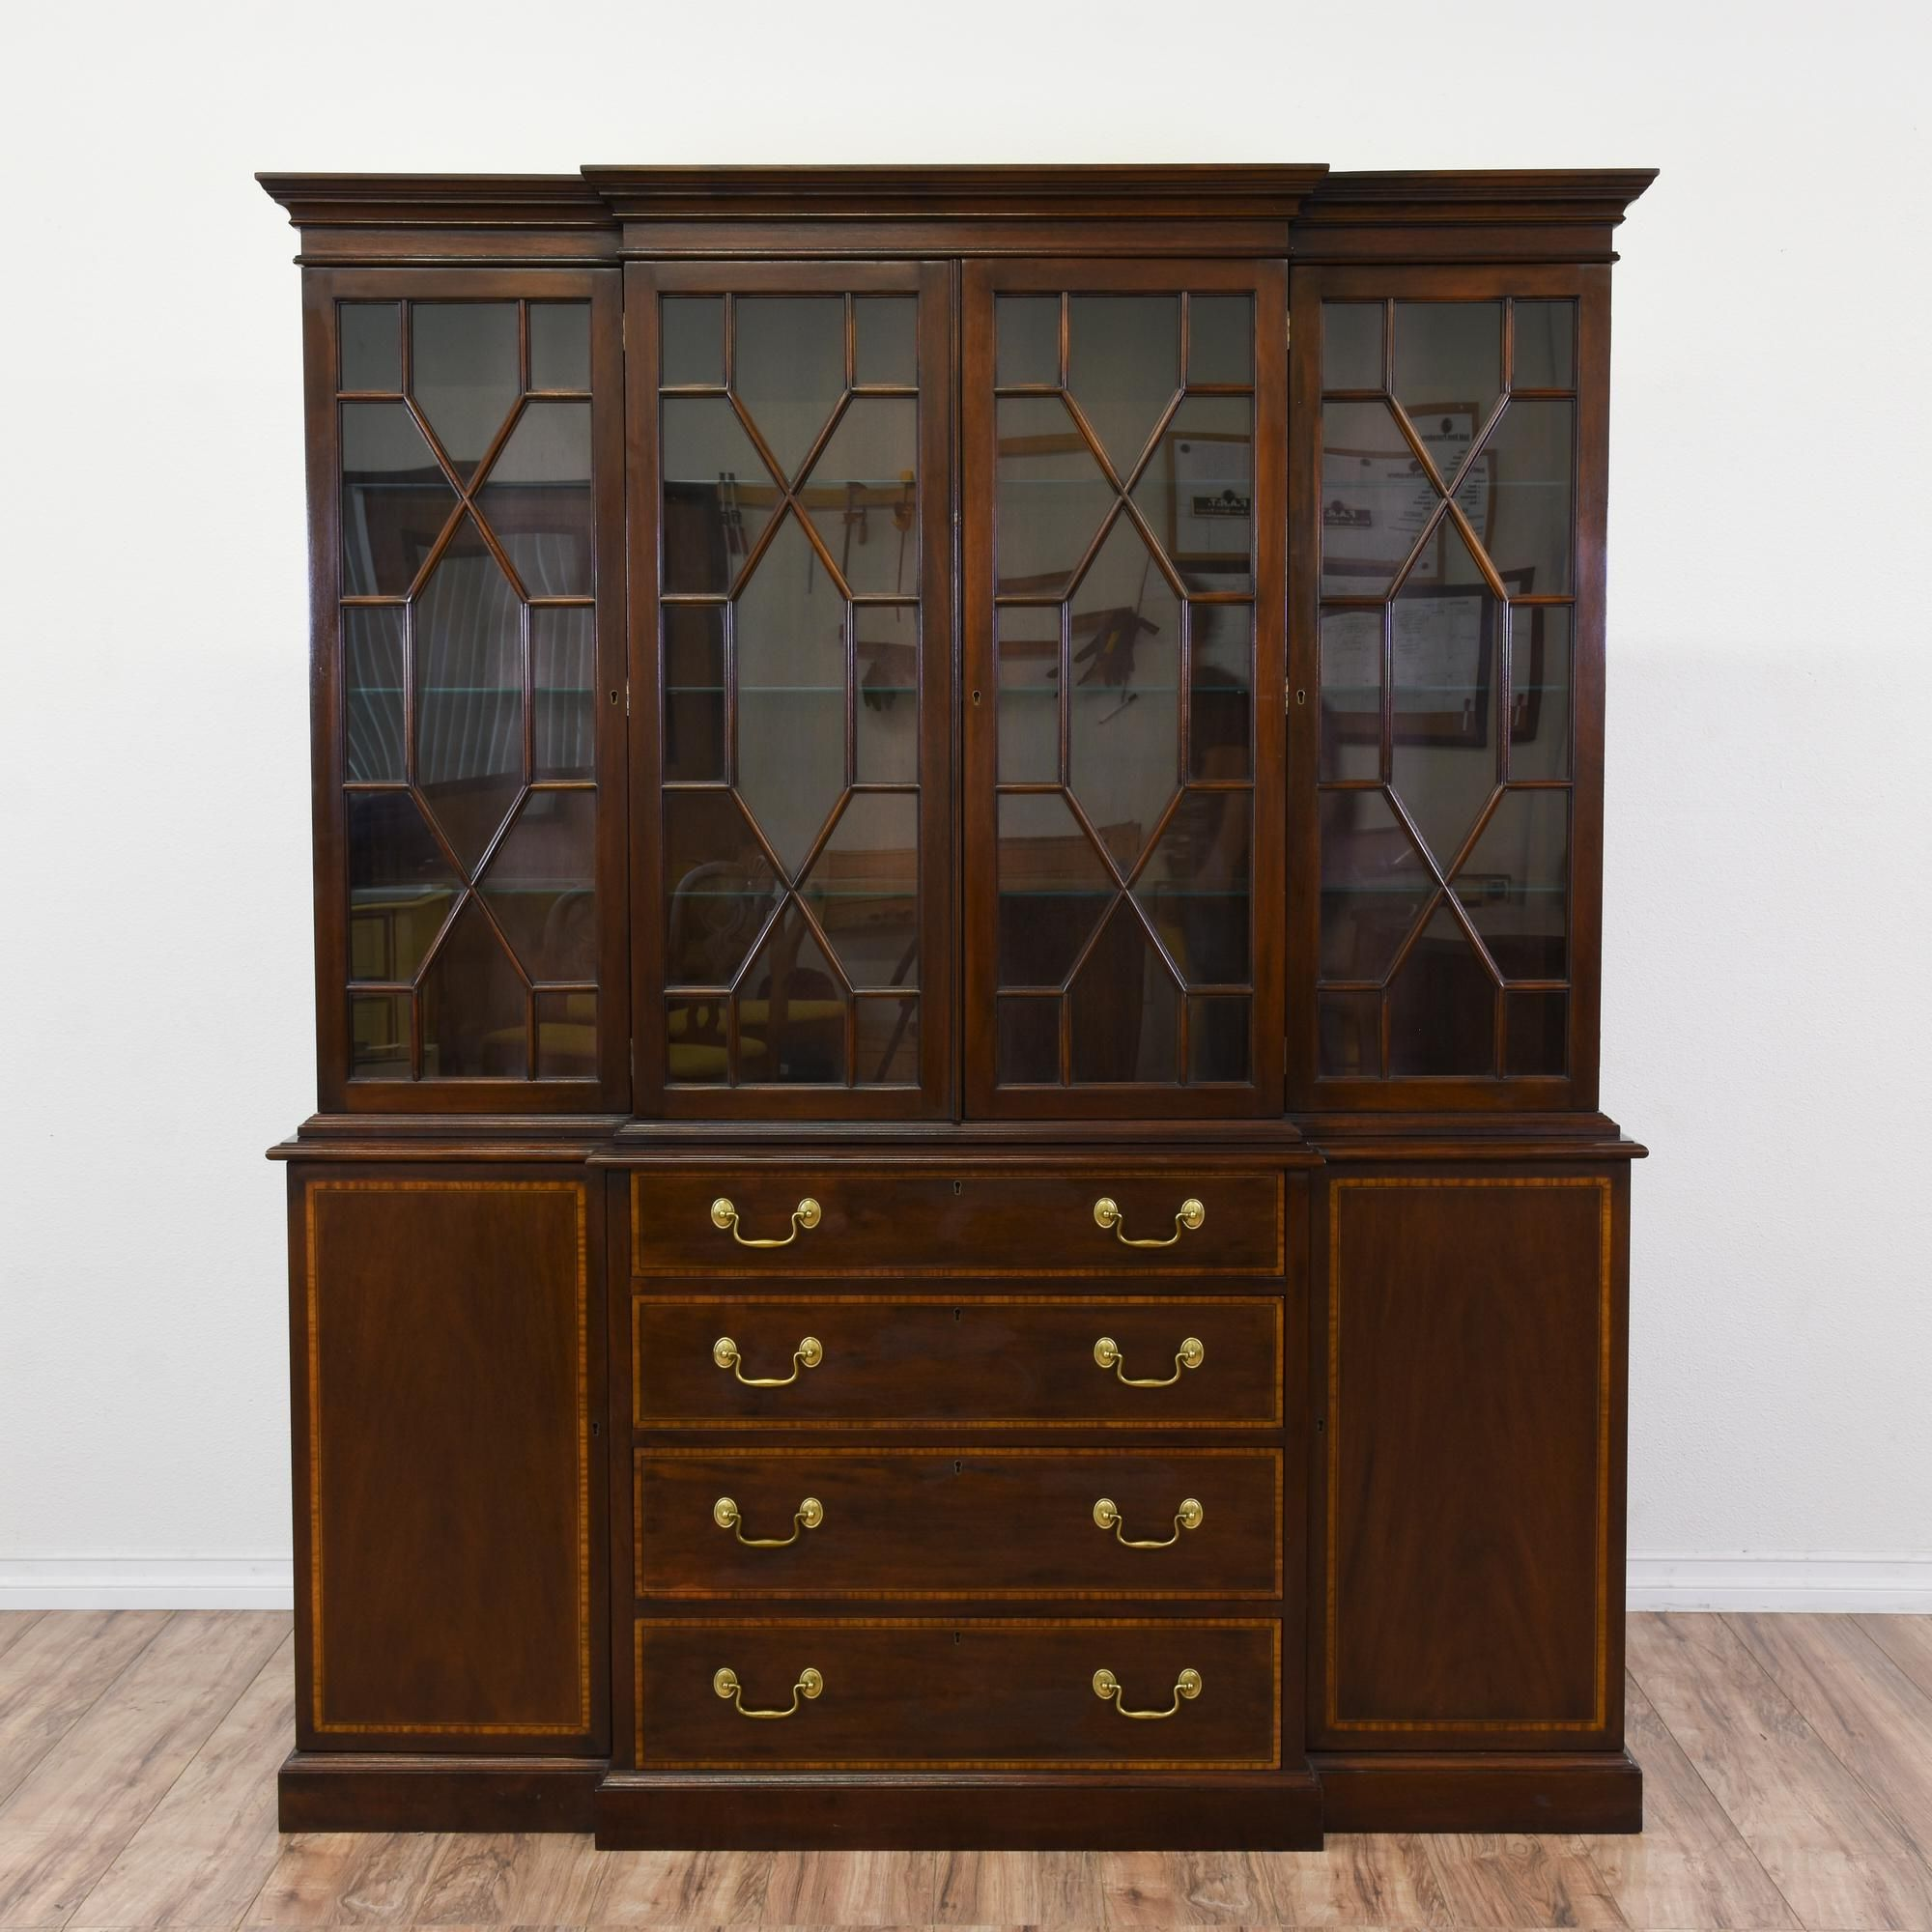 Gorgeous Large Mahogany China Cabinet At 65 Feet Tall This Has Storage For All Your Dining Room Needs And More Including 4 Drawers Two